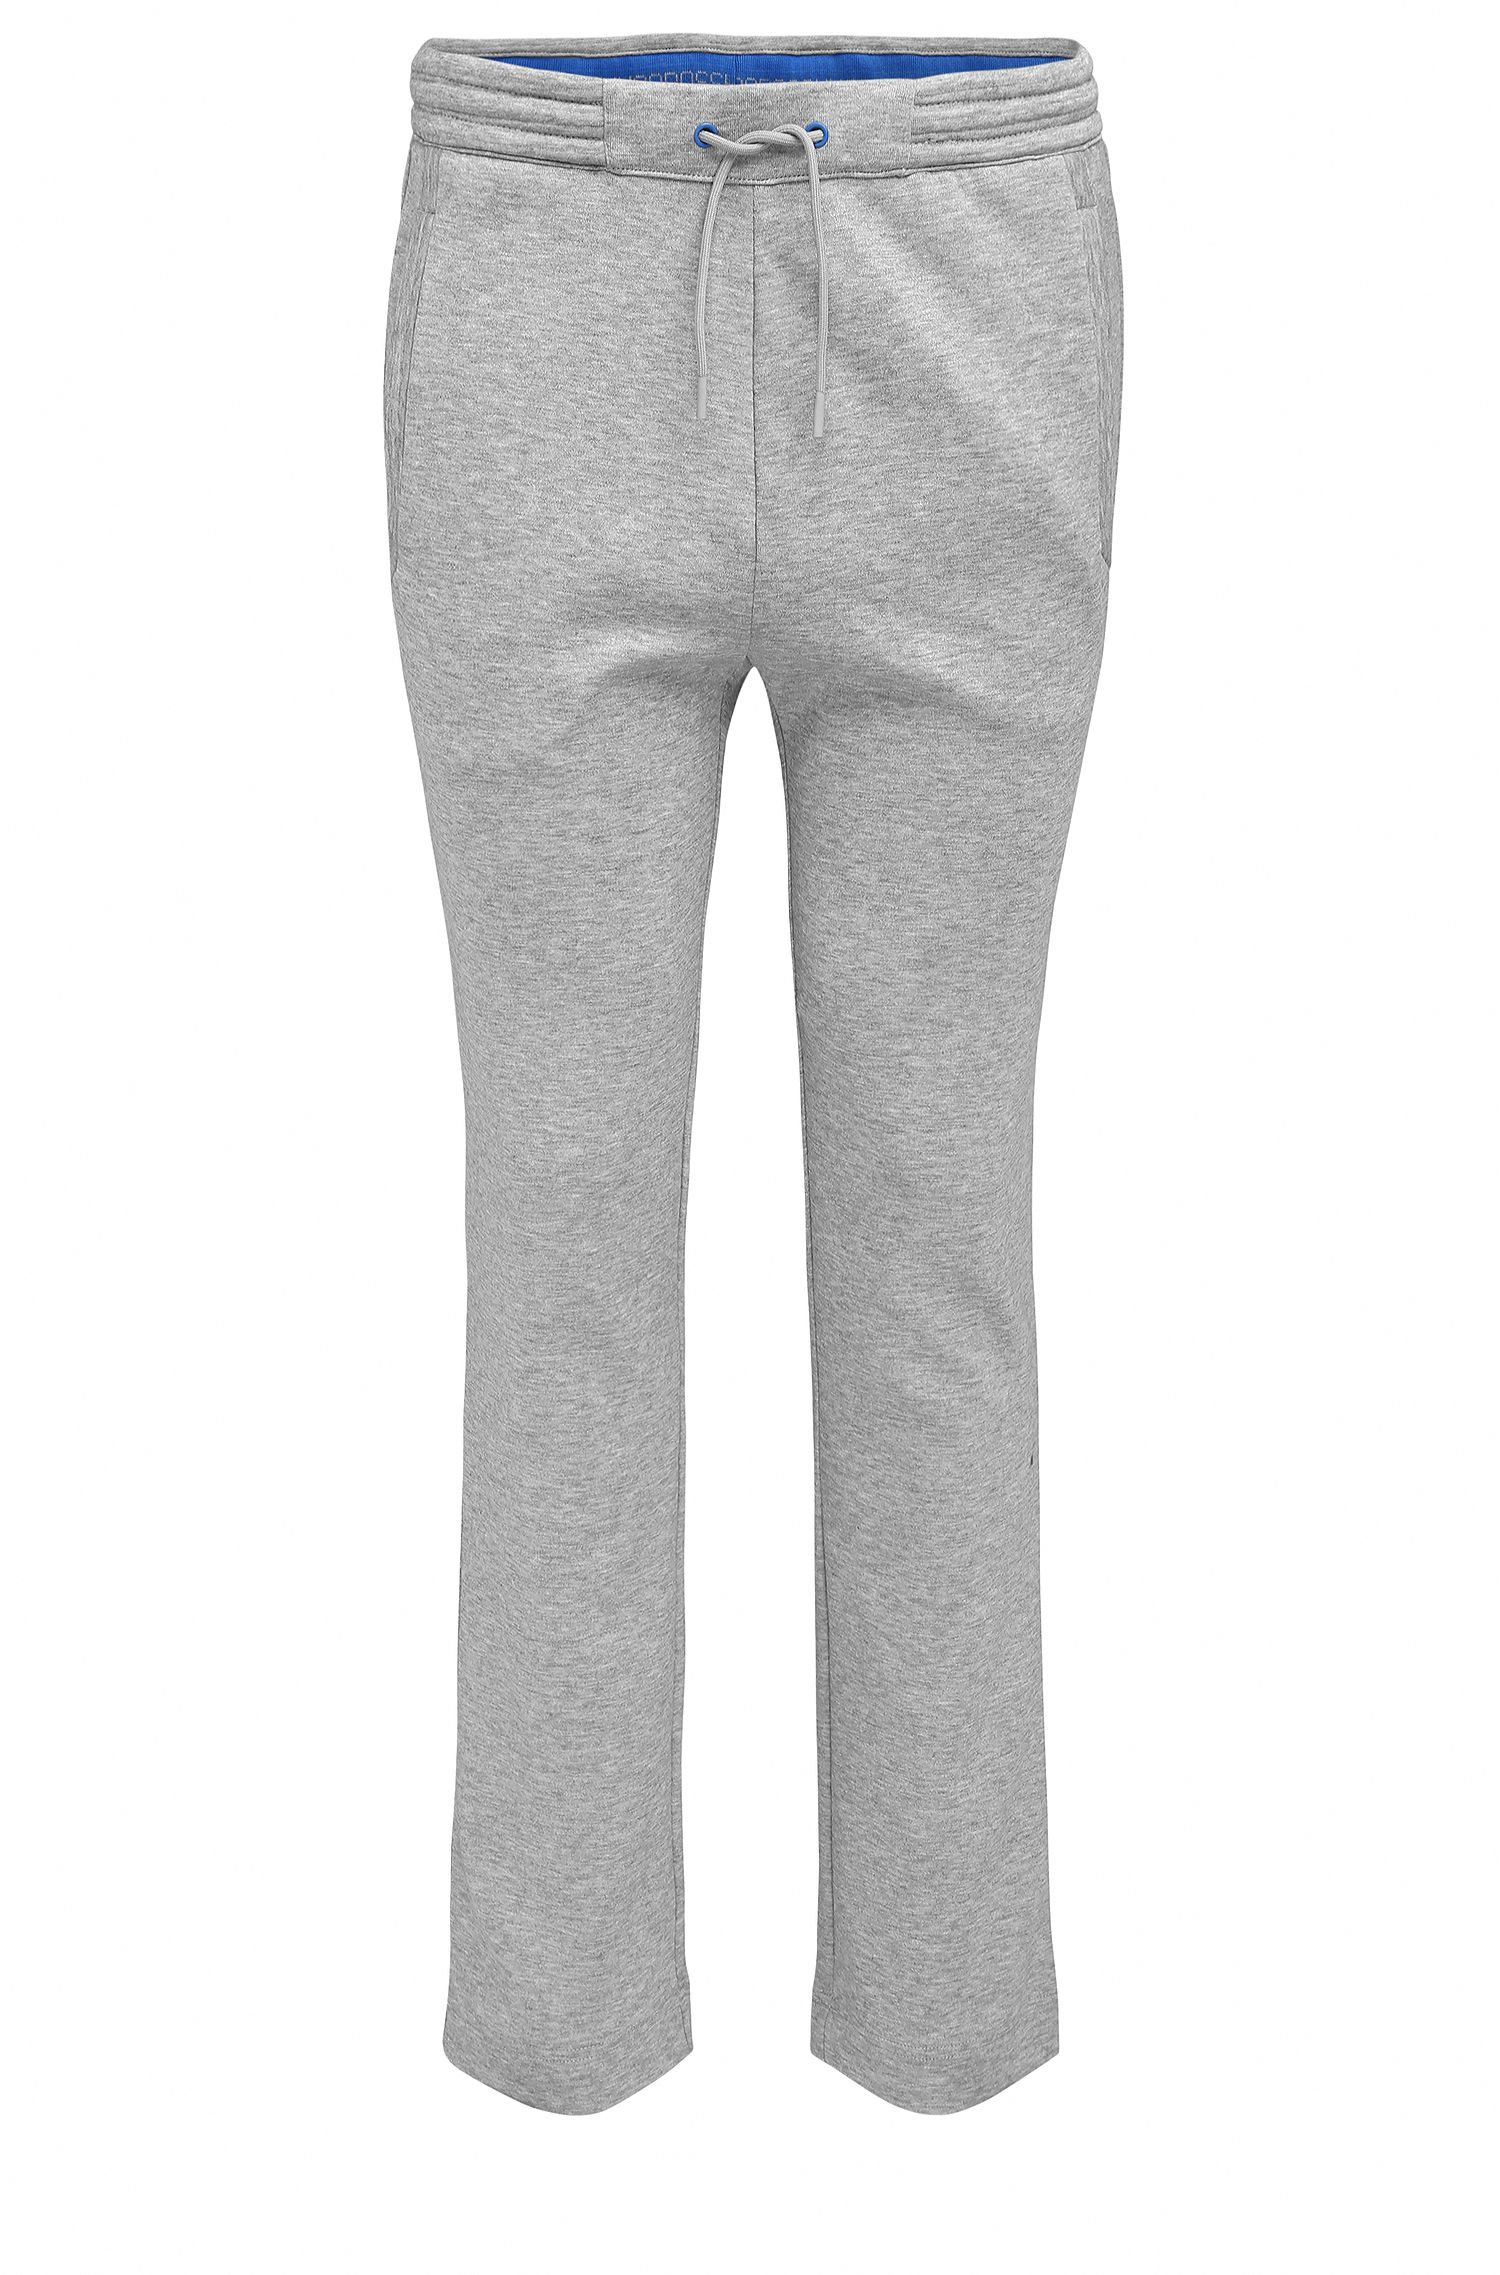 Pantalon en coton Regular Fit, aux finitions droites sans bordures au bas des jambes